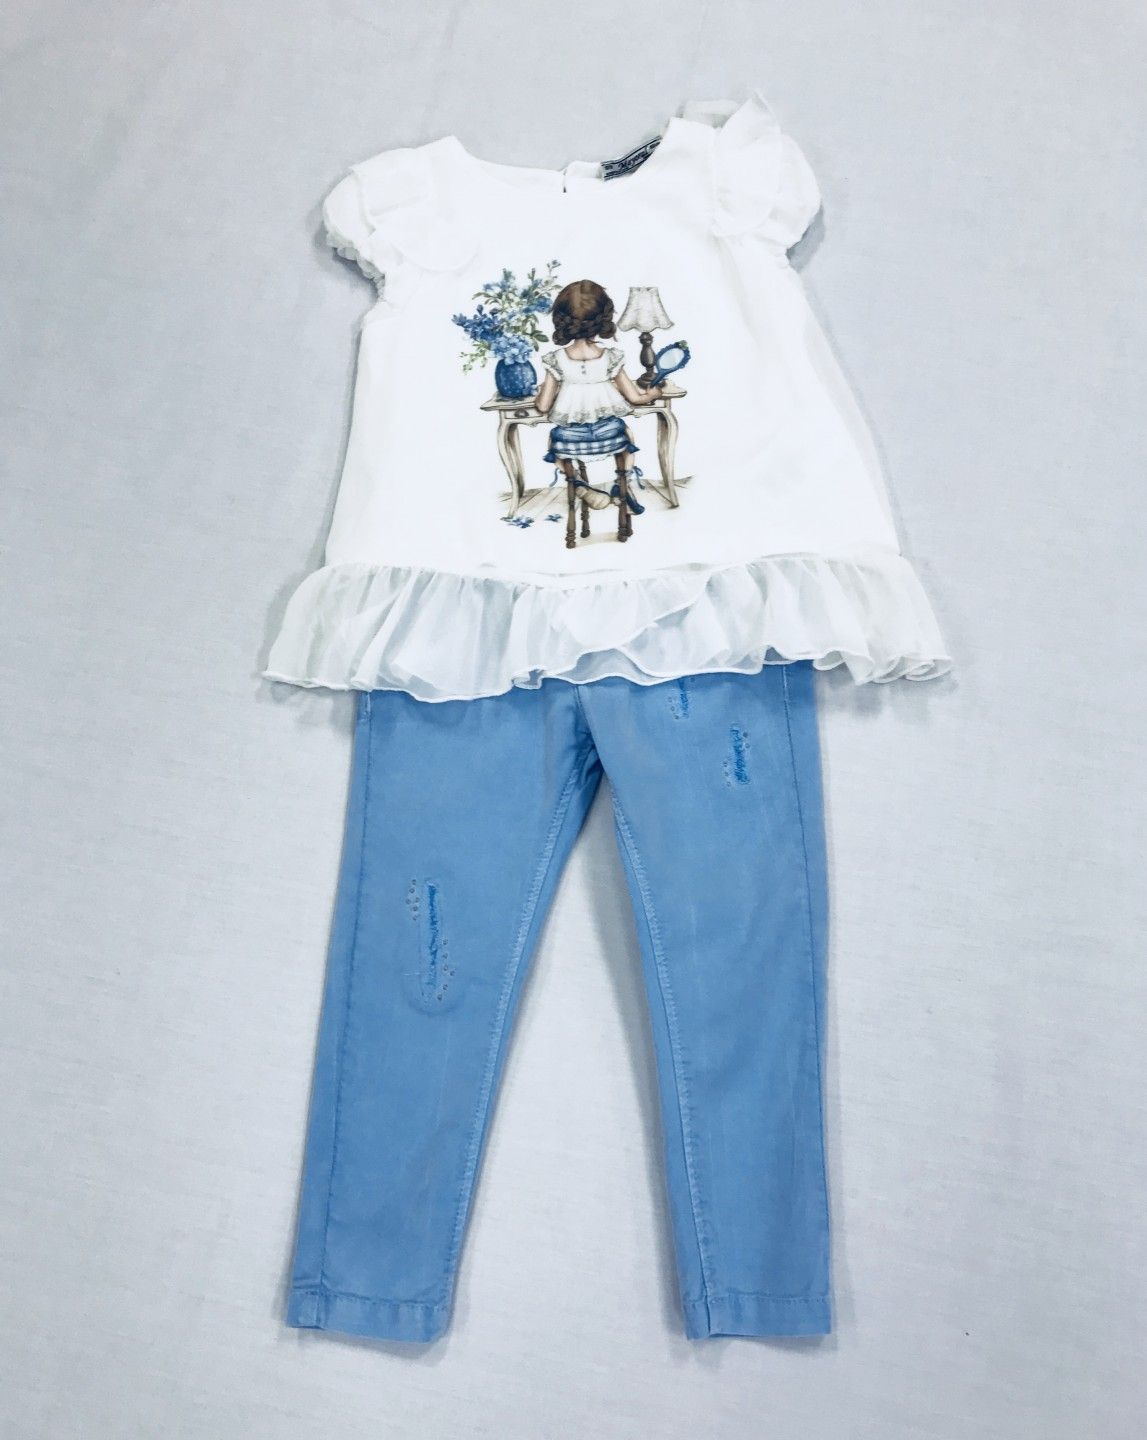 WHITE BLOUSE AND LIGHT BLUE JEANS 2-PIECE SET. SIZES 2-5.